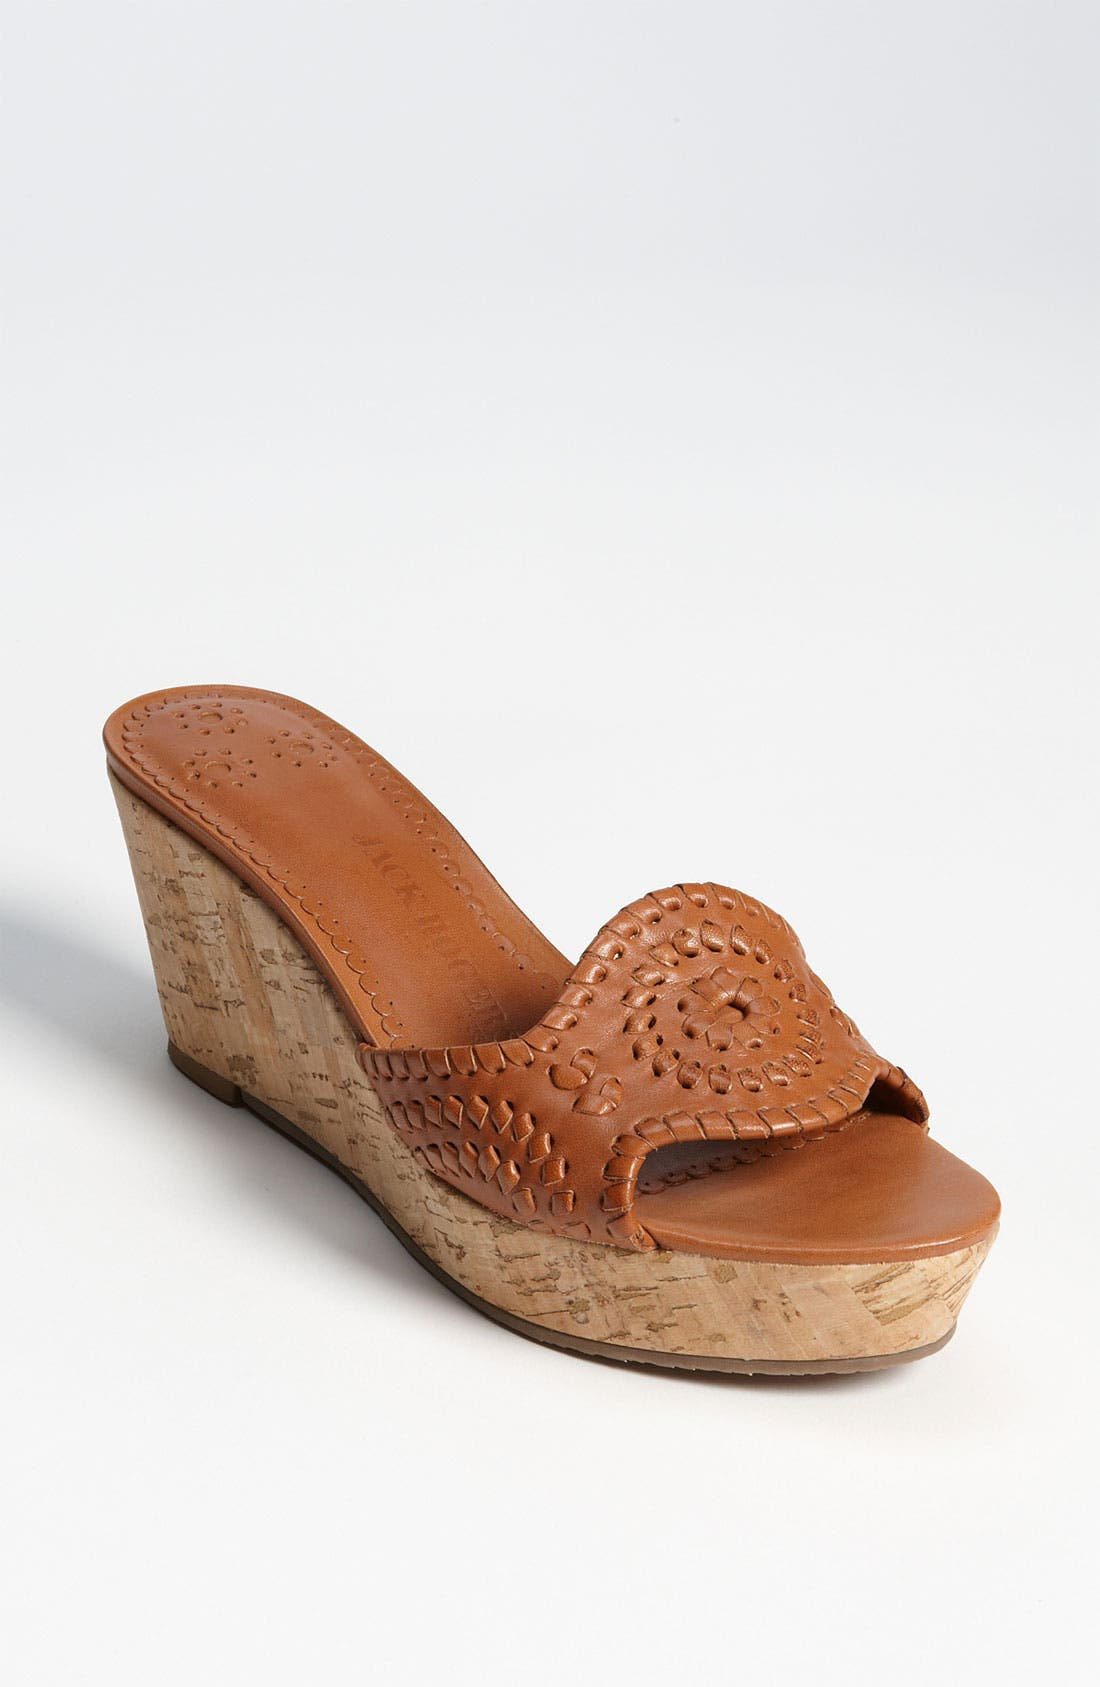 Alternate Image 1 Selected - Jack Rogers 'Barcelona Capri' Sandal